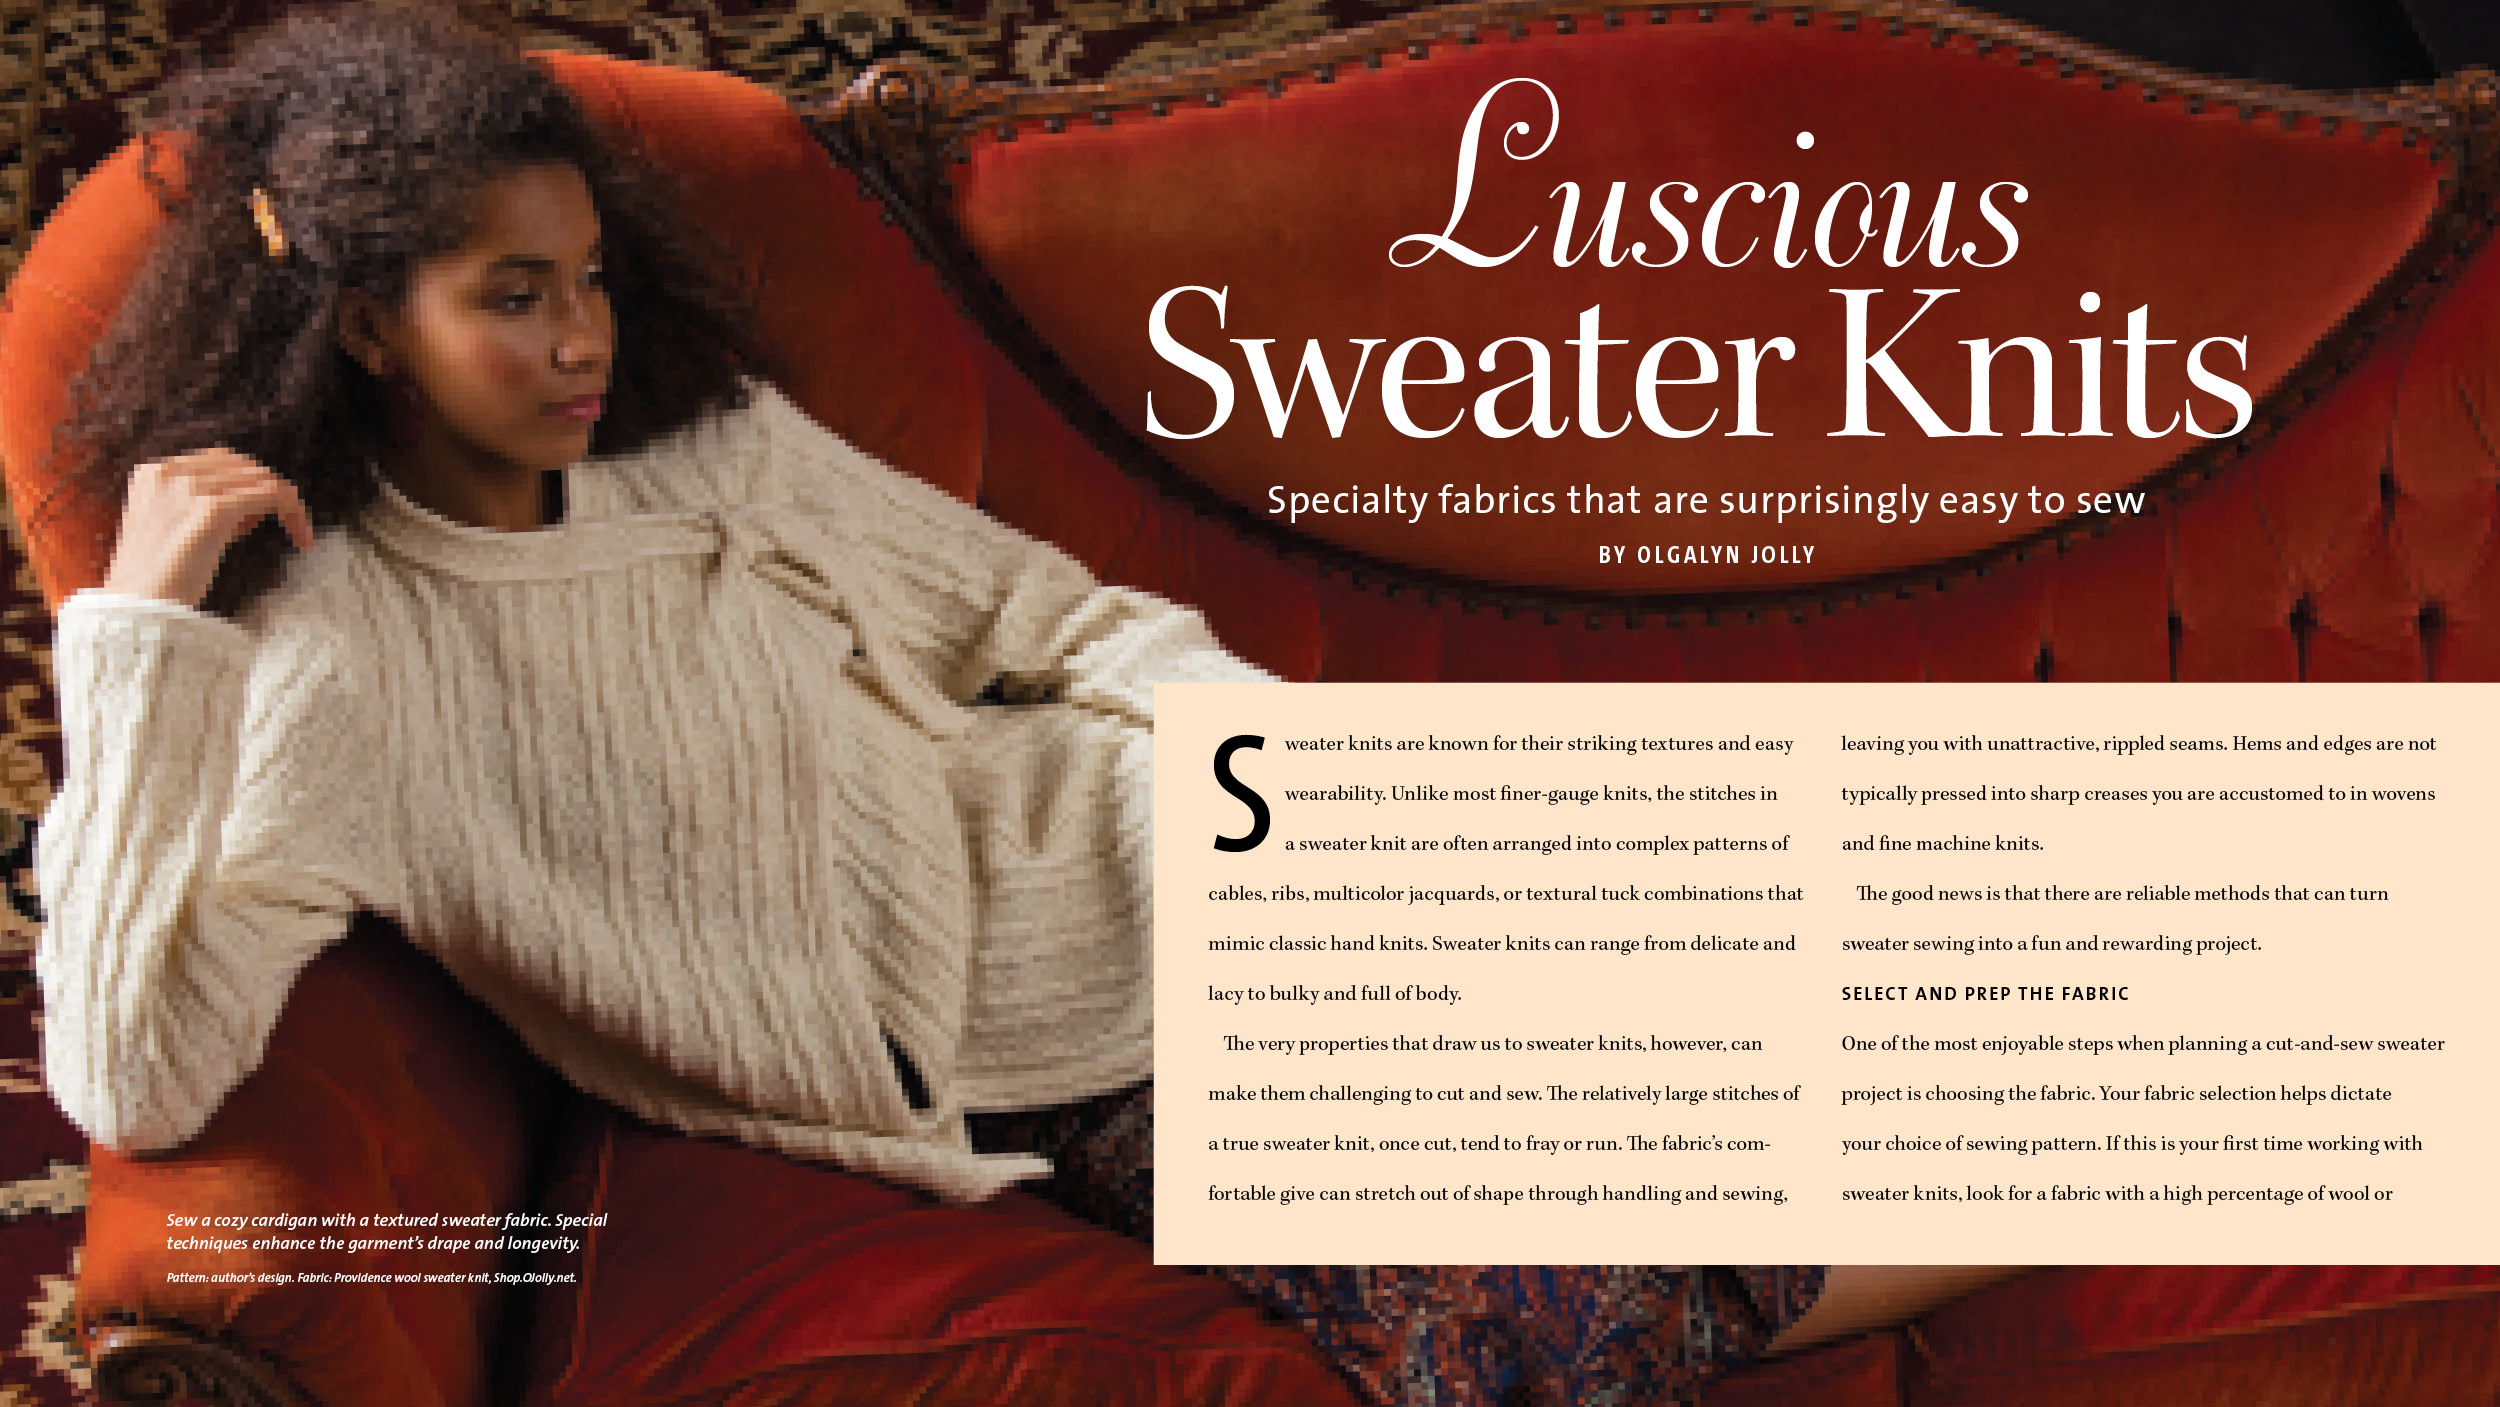 Luscious Sweater Knits - by Olgalyn Jilly